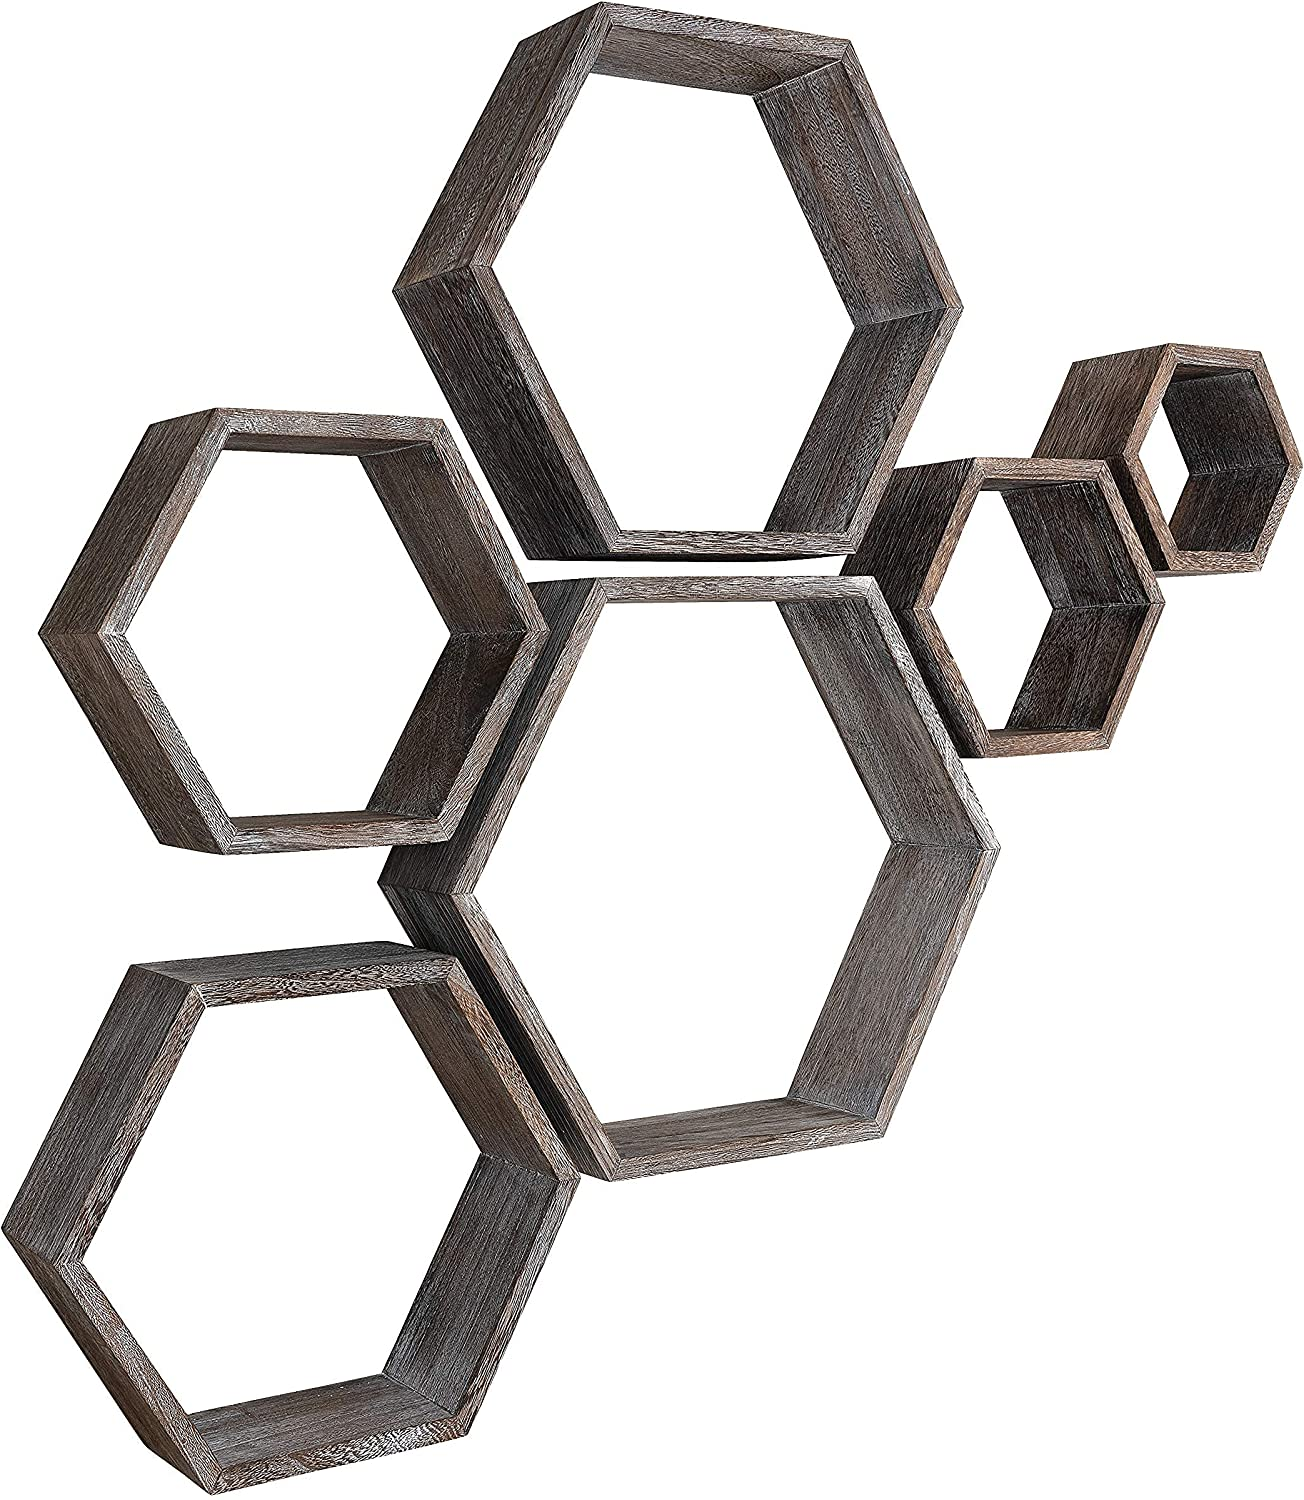 Honeycomb Floating Shelves, Set of 6, Natural Rustic Wood, Hexagon Wall Mount Decor for Living/Dining Room, Bedroom, Kitchen, Bathroom or Office Gallery Wall, Screws and Installation Manual Included